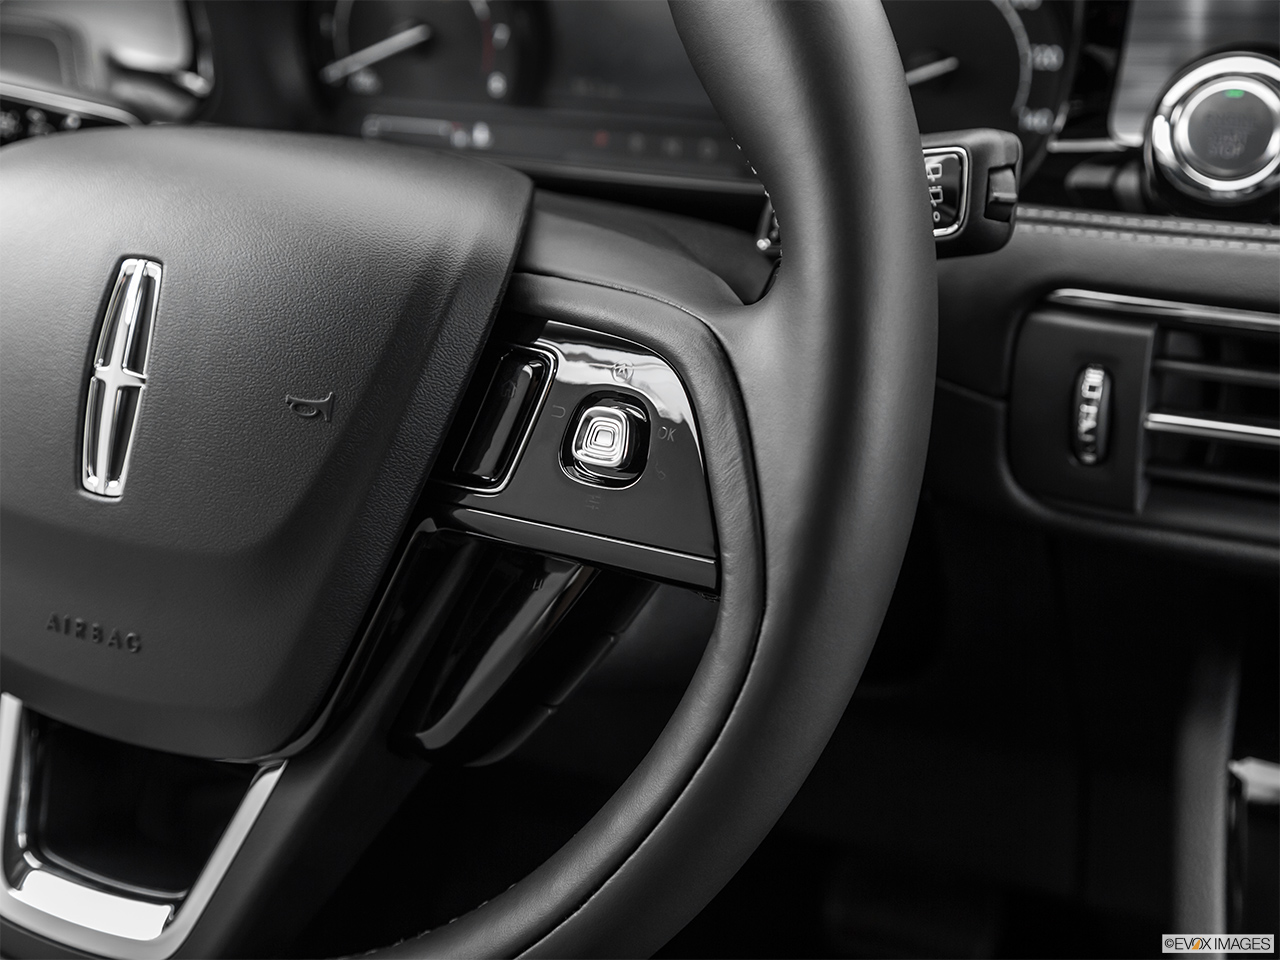 2020 Lincoln Corsair Standard Steering Wheel Controls (Right Side)